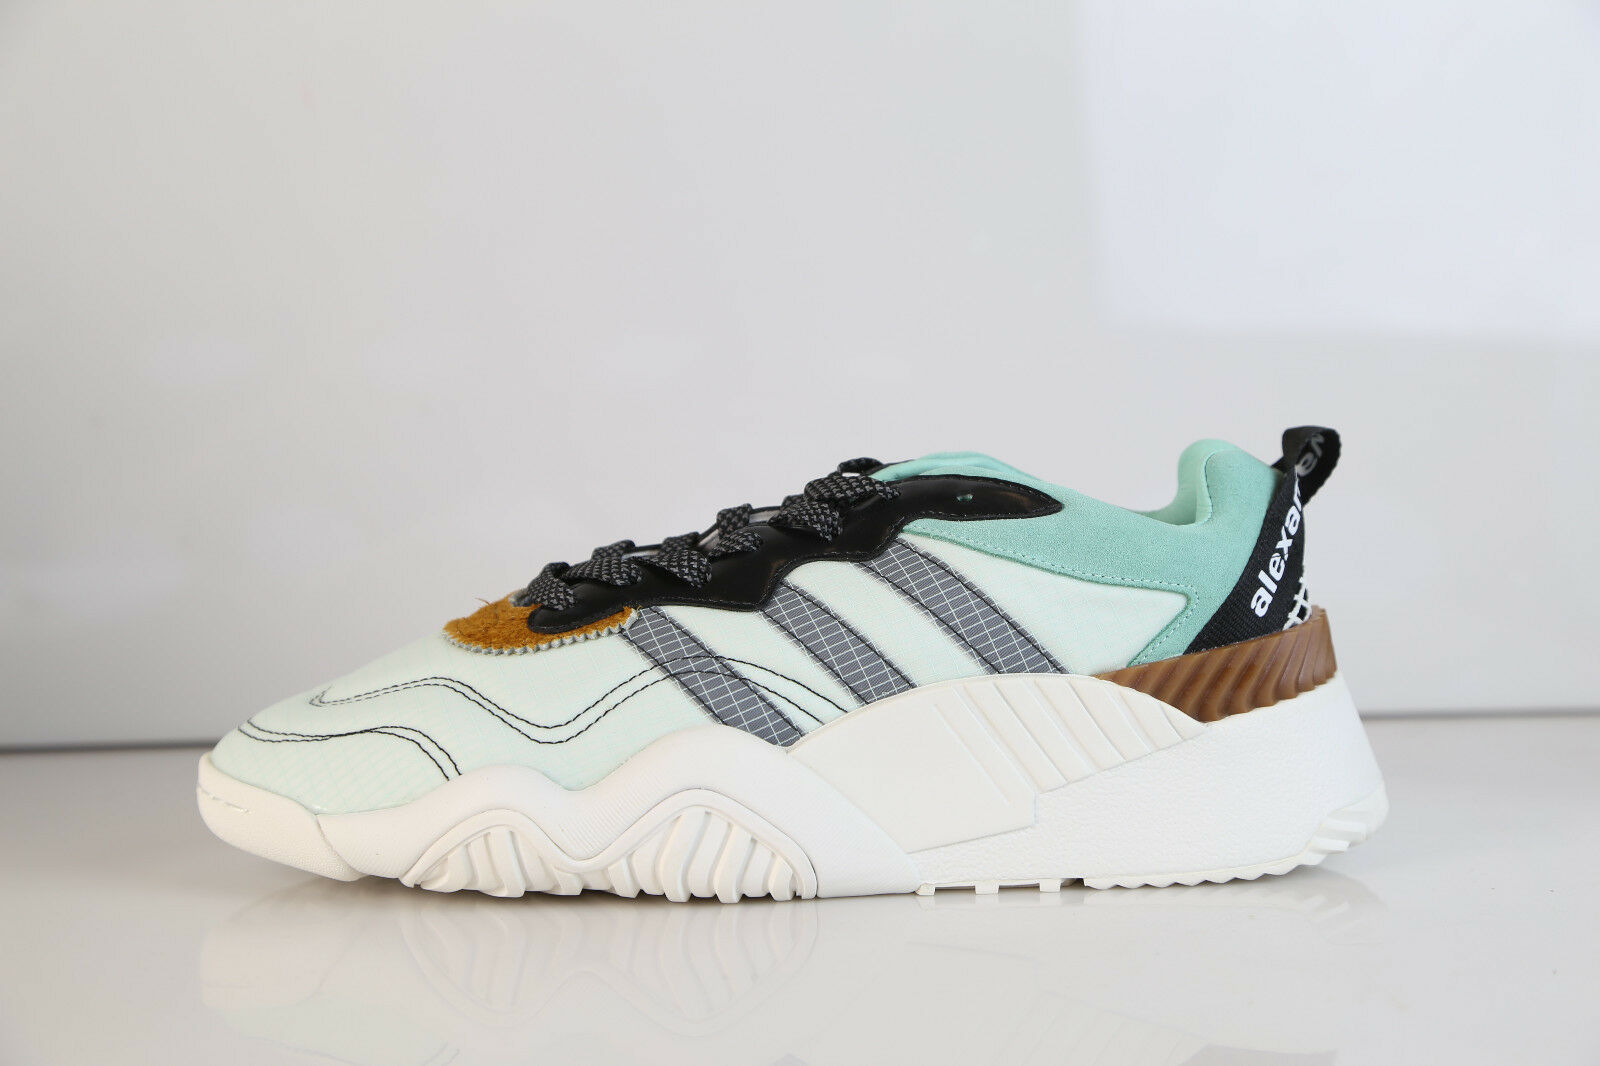 Adidas AW Alexander Wang Turnout Trainer White Clear Mint Black DB2613 8-13